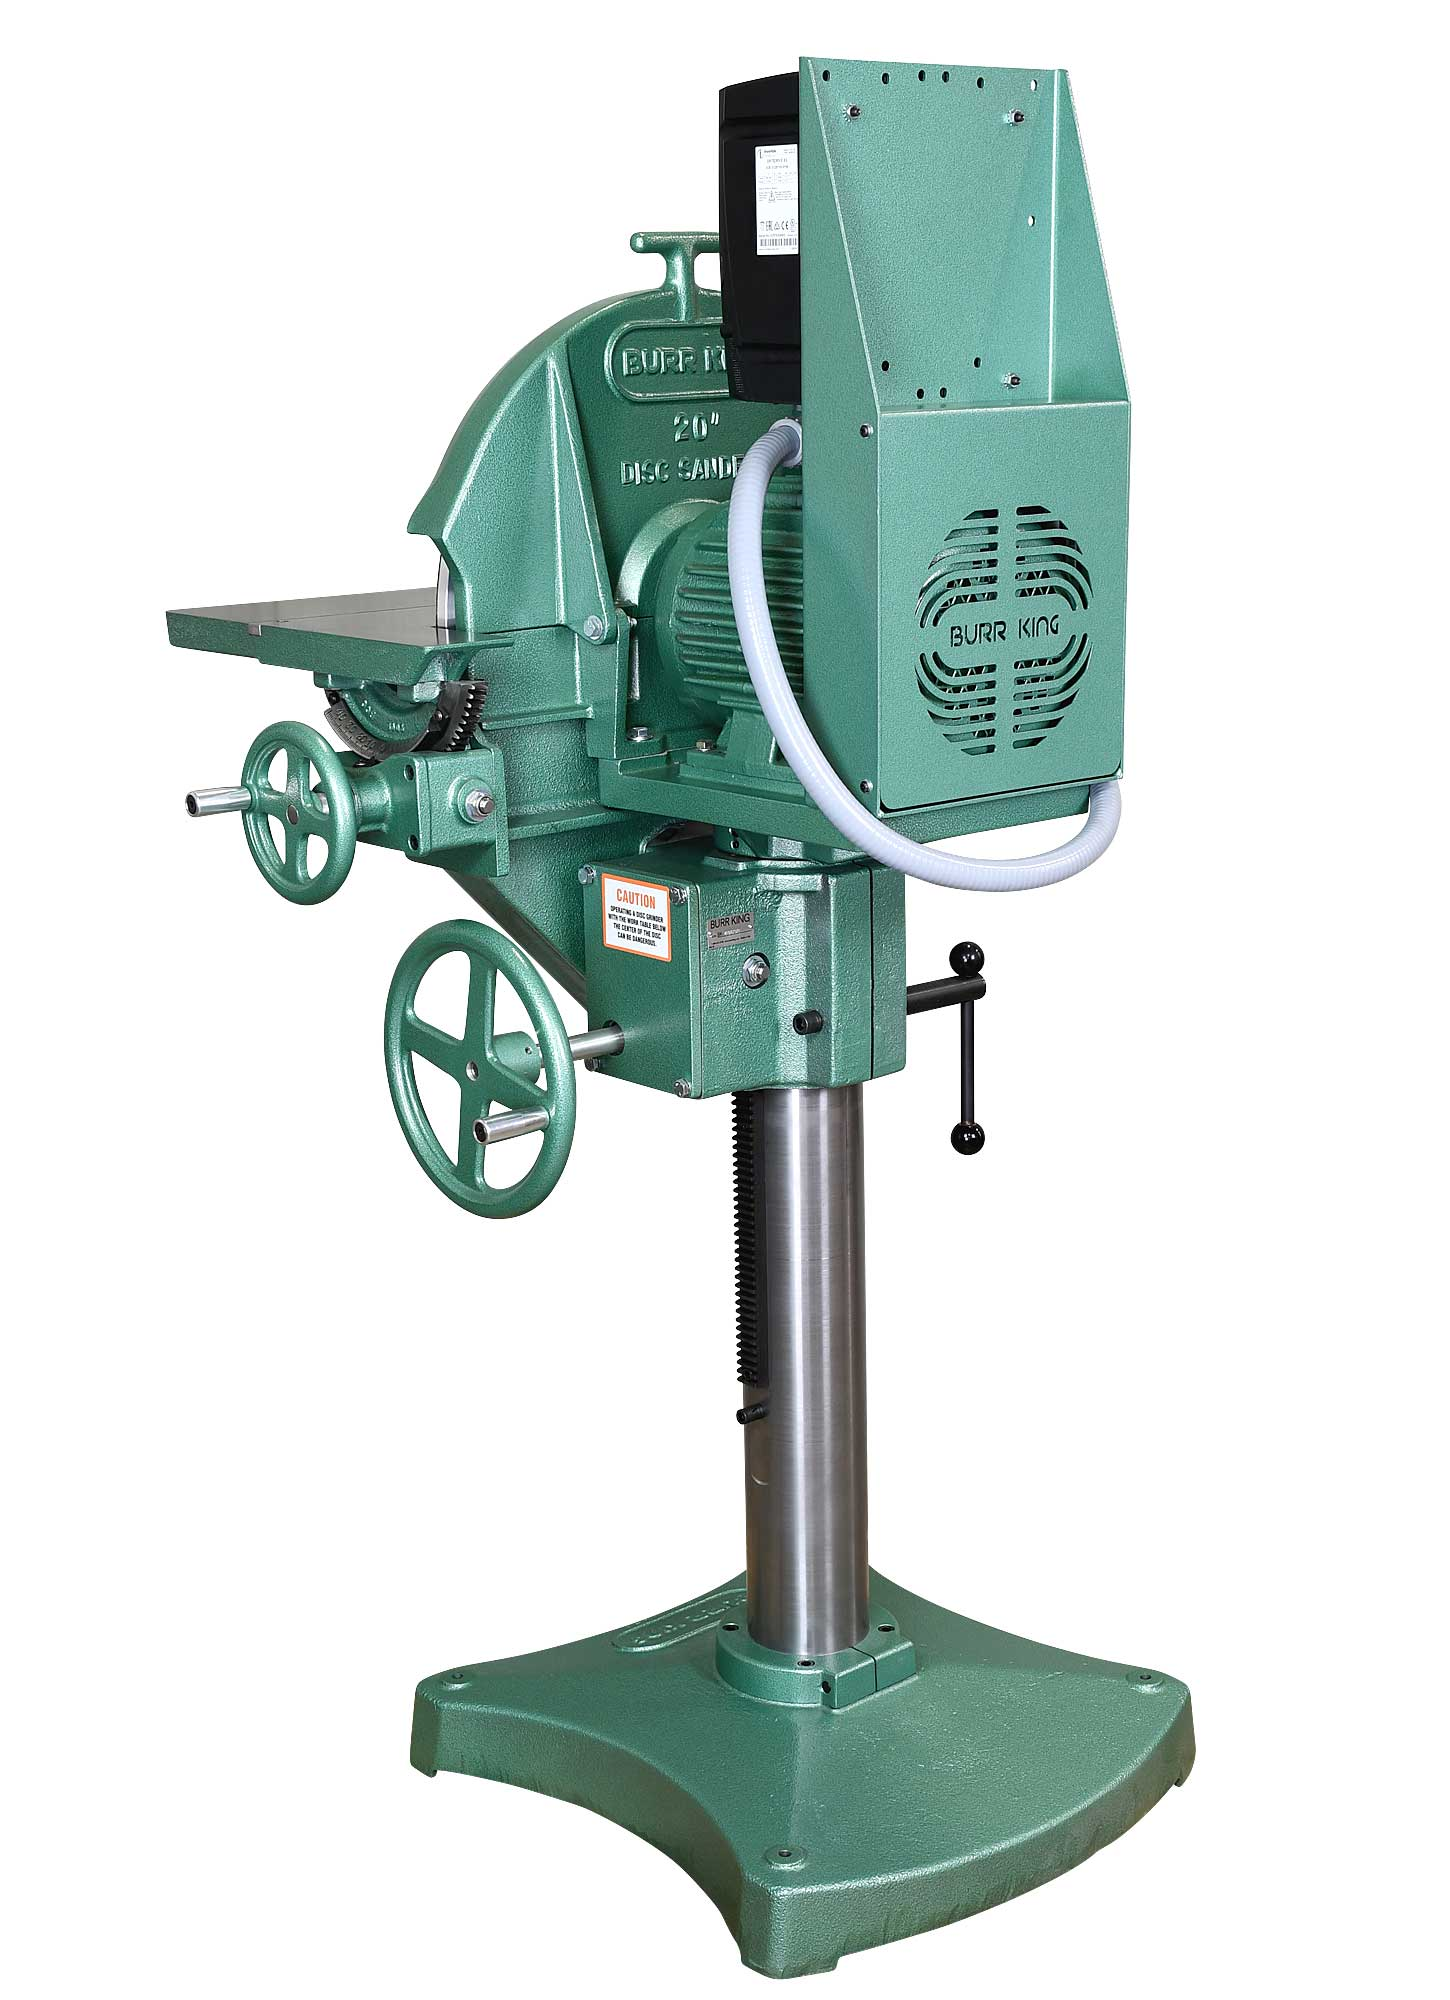 24103 - 20` Variable Speed Disc Grinder - Rear view